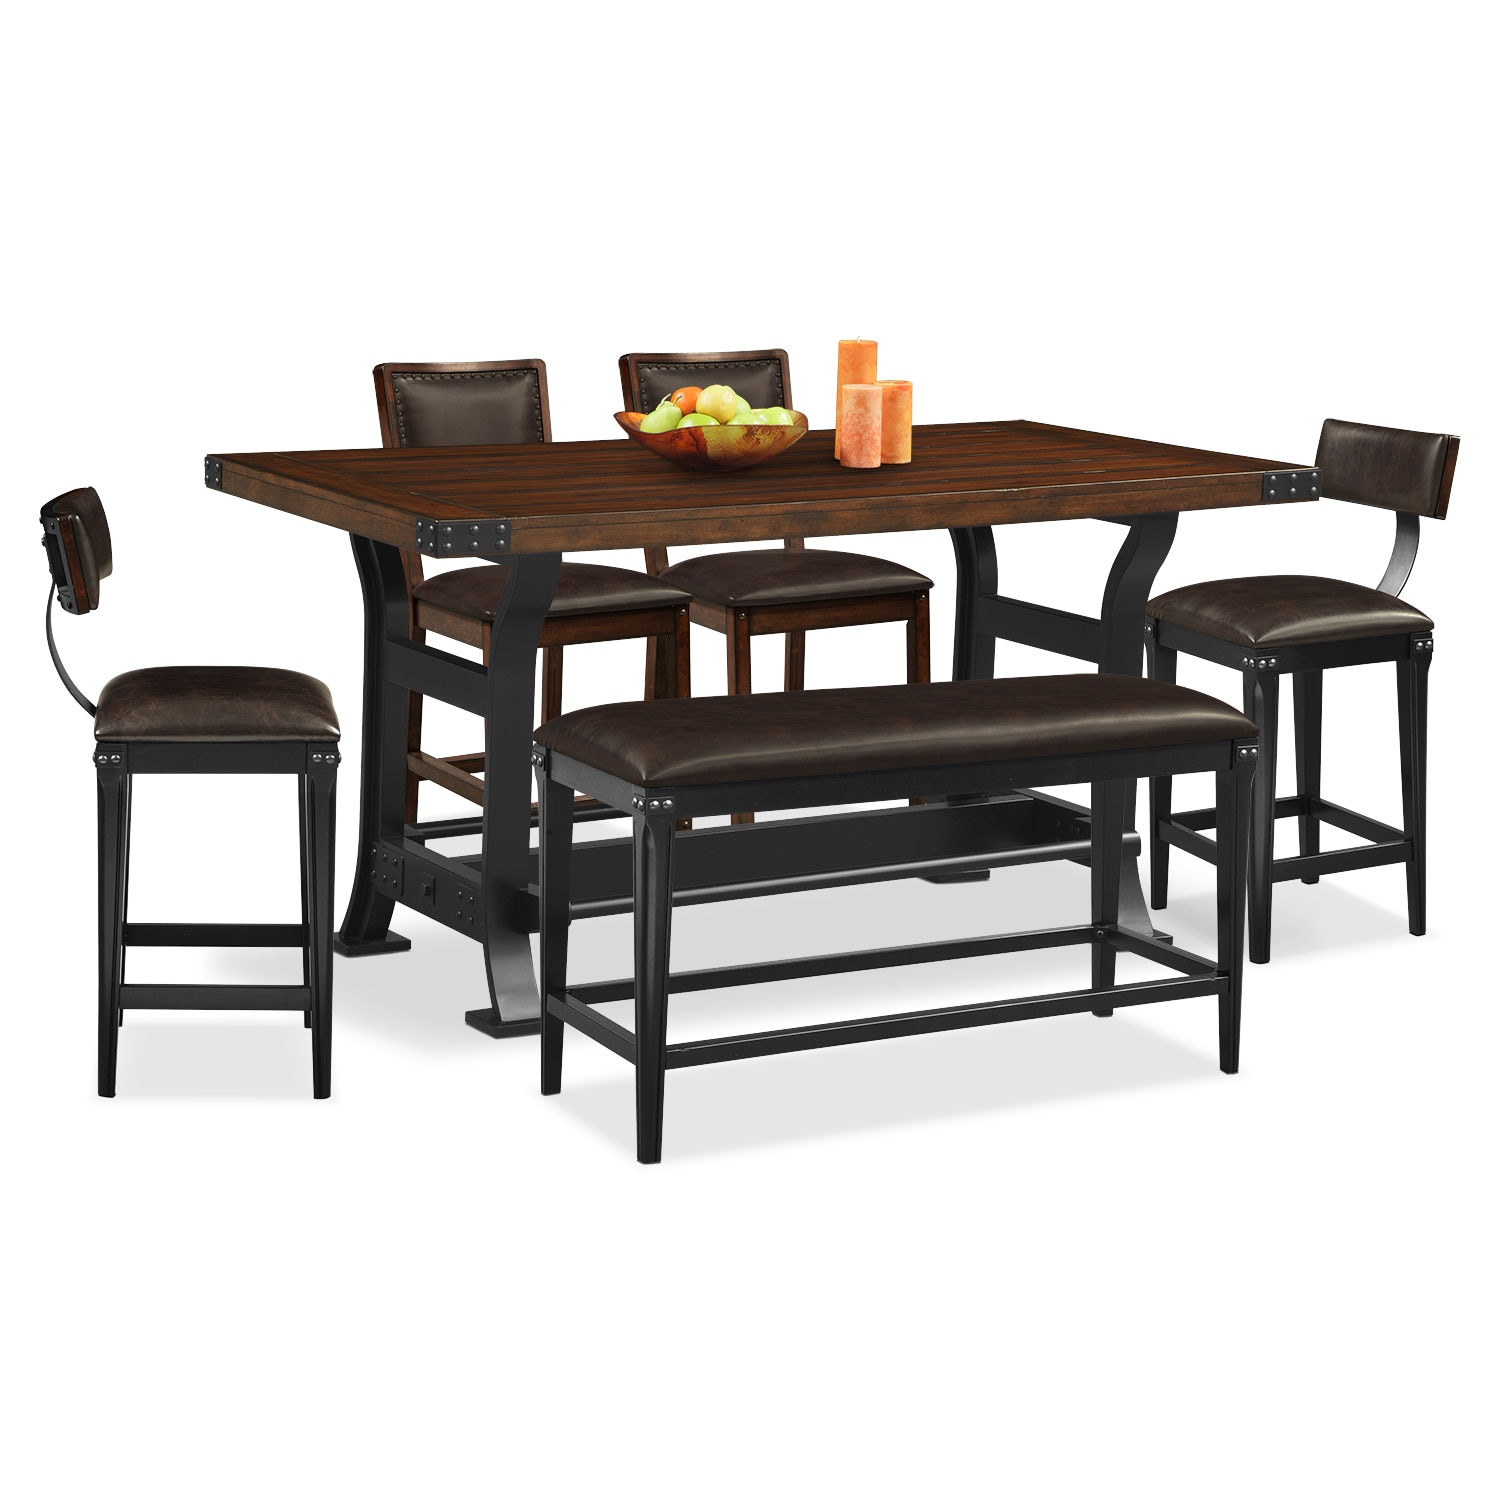 Newcastle 6 Pc. Counter-Height Dining Room w/ 2 Chairs, 2 Stools and Bench